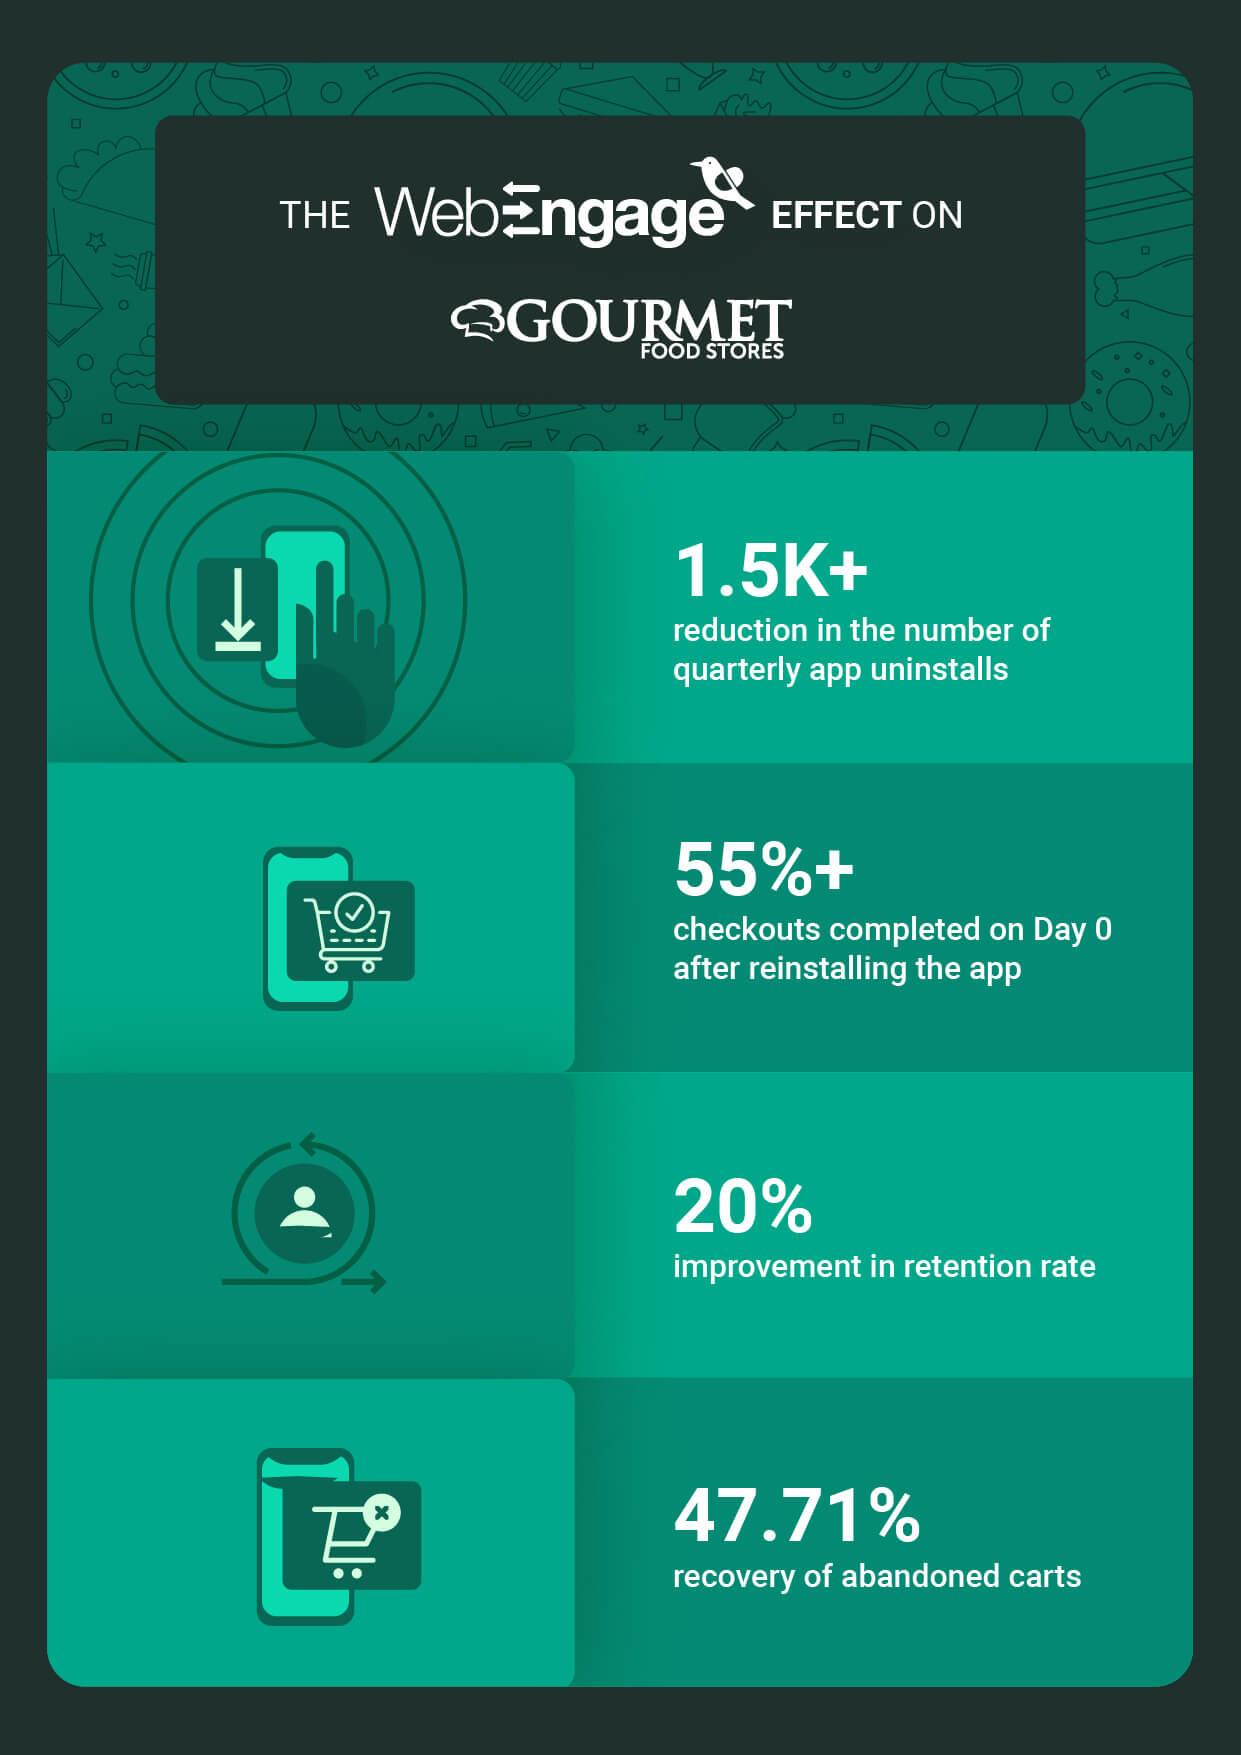 Gourmet Egypt increases retention rate by 20% | Case Study